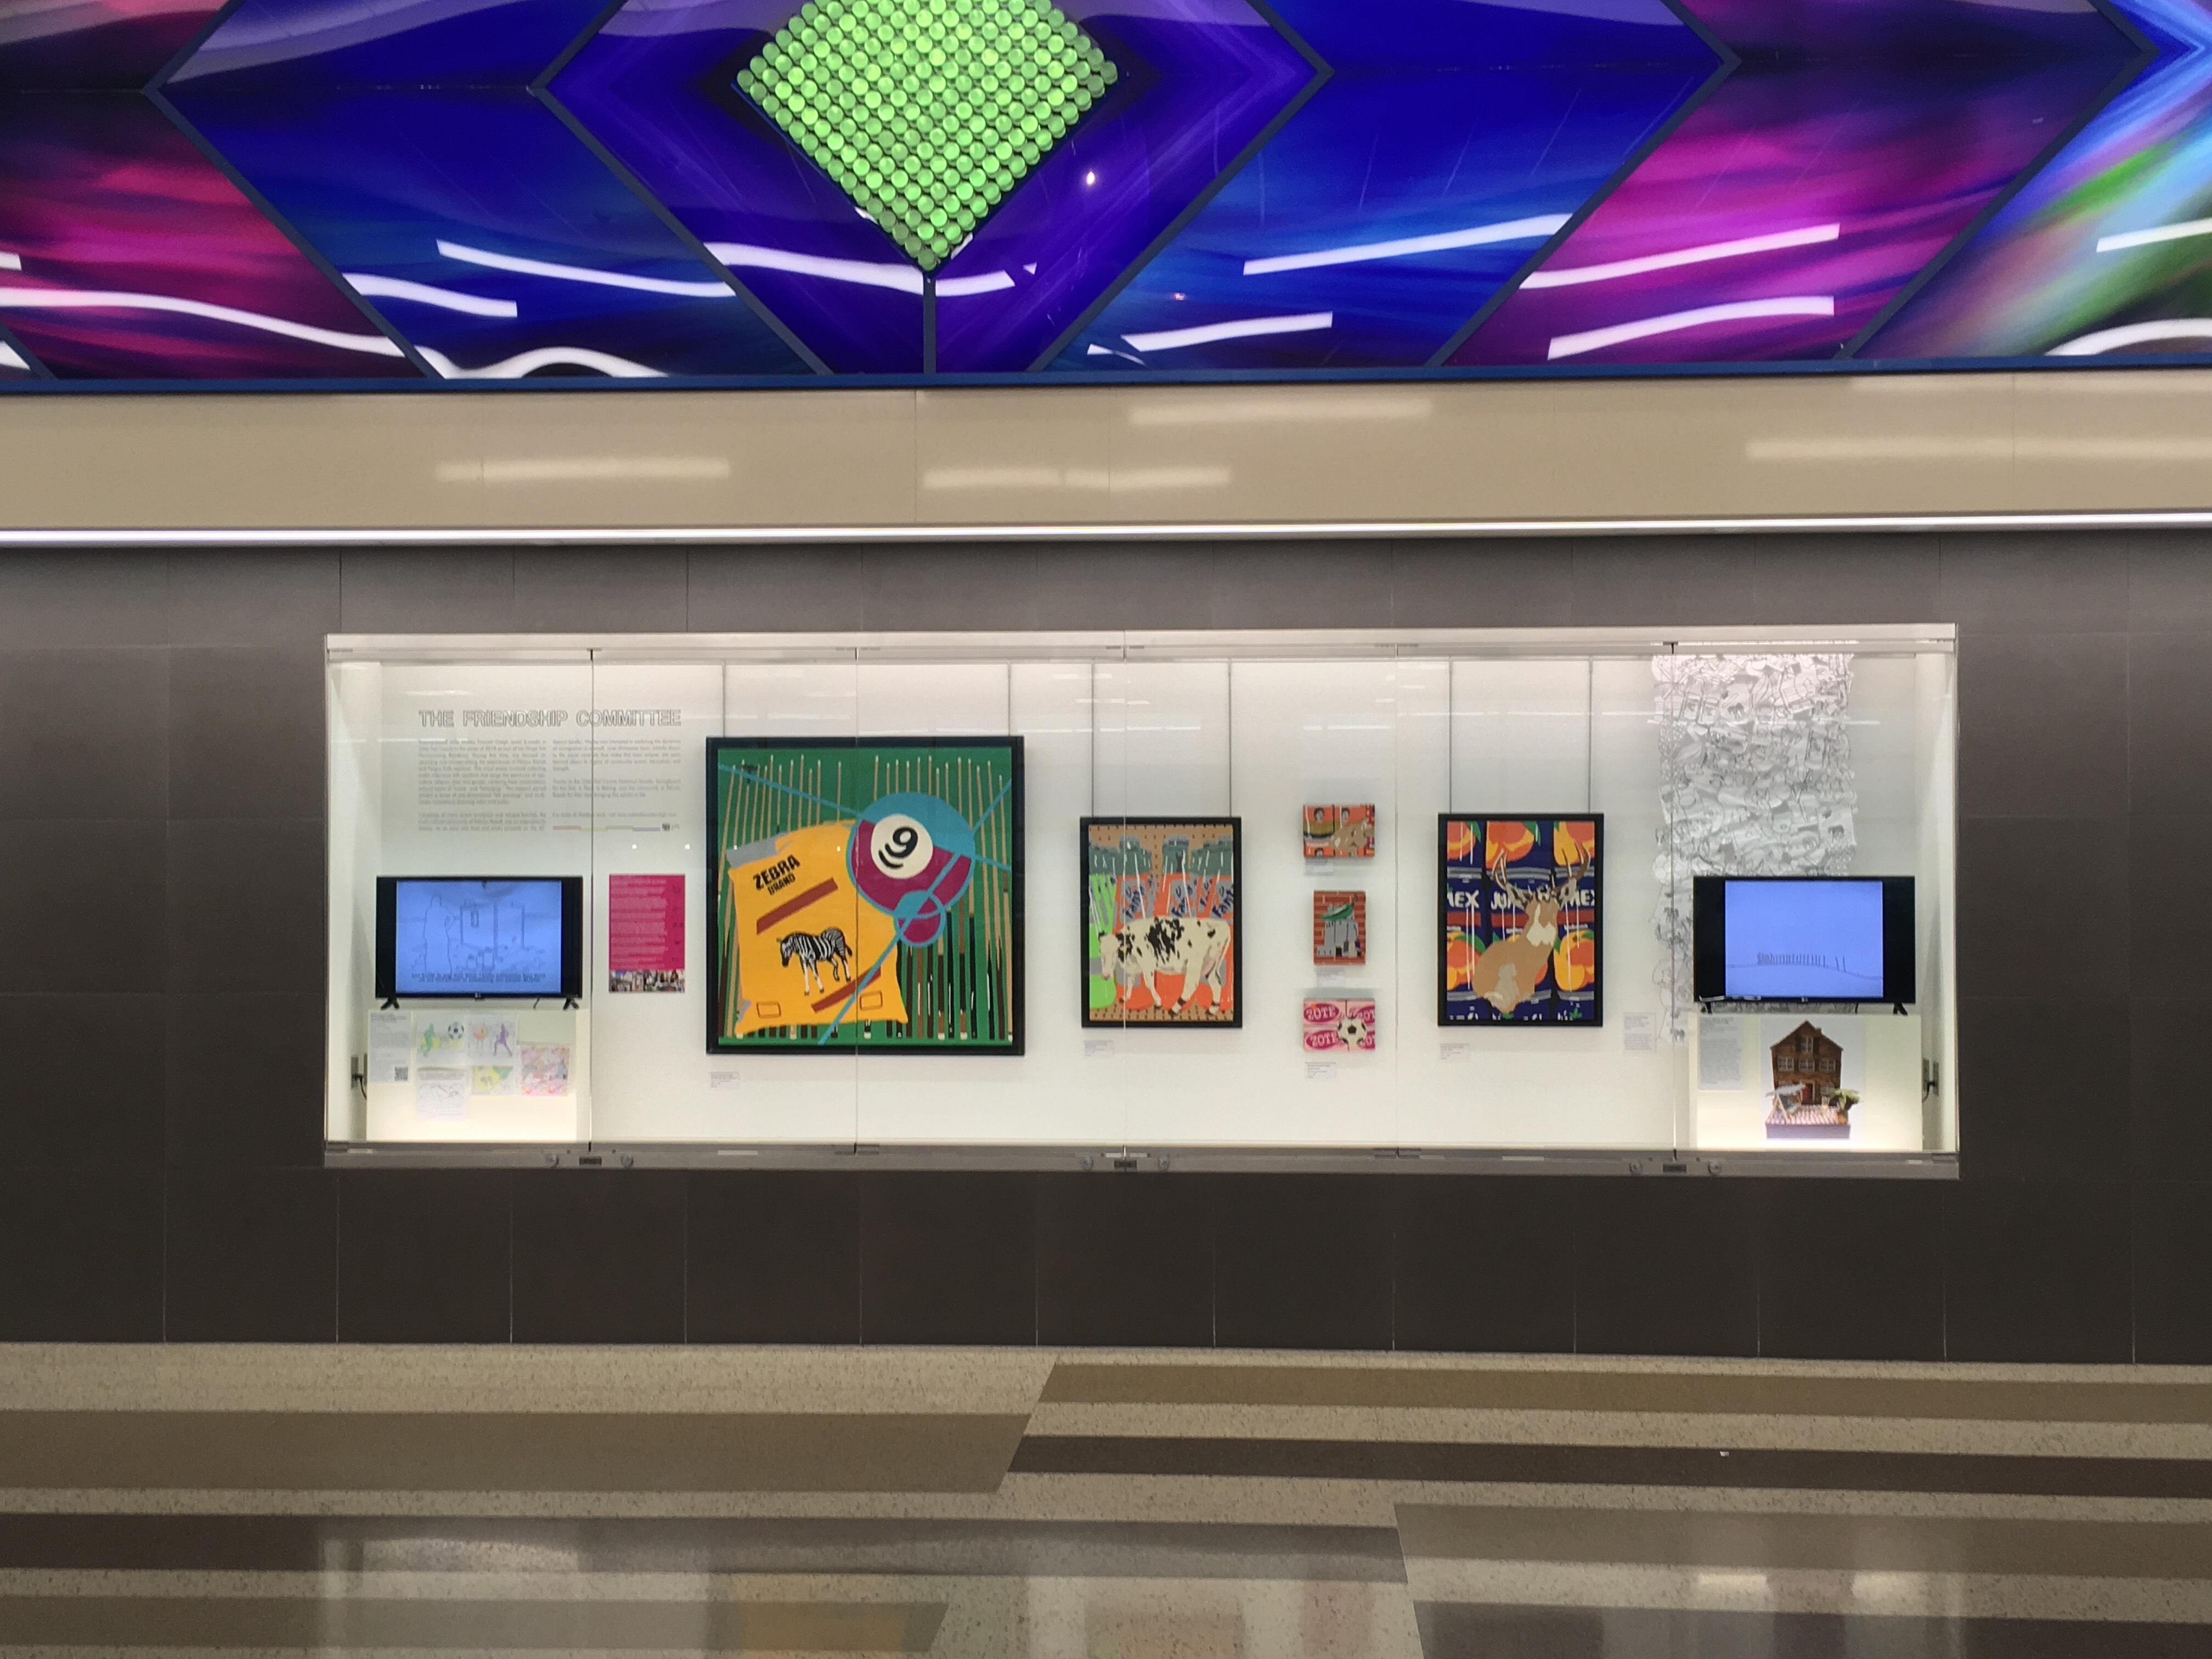 Brightly colored art by Wesley Fawcett Creigh installed in a glass case in an airport terminal